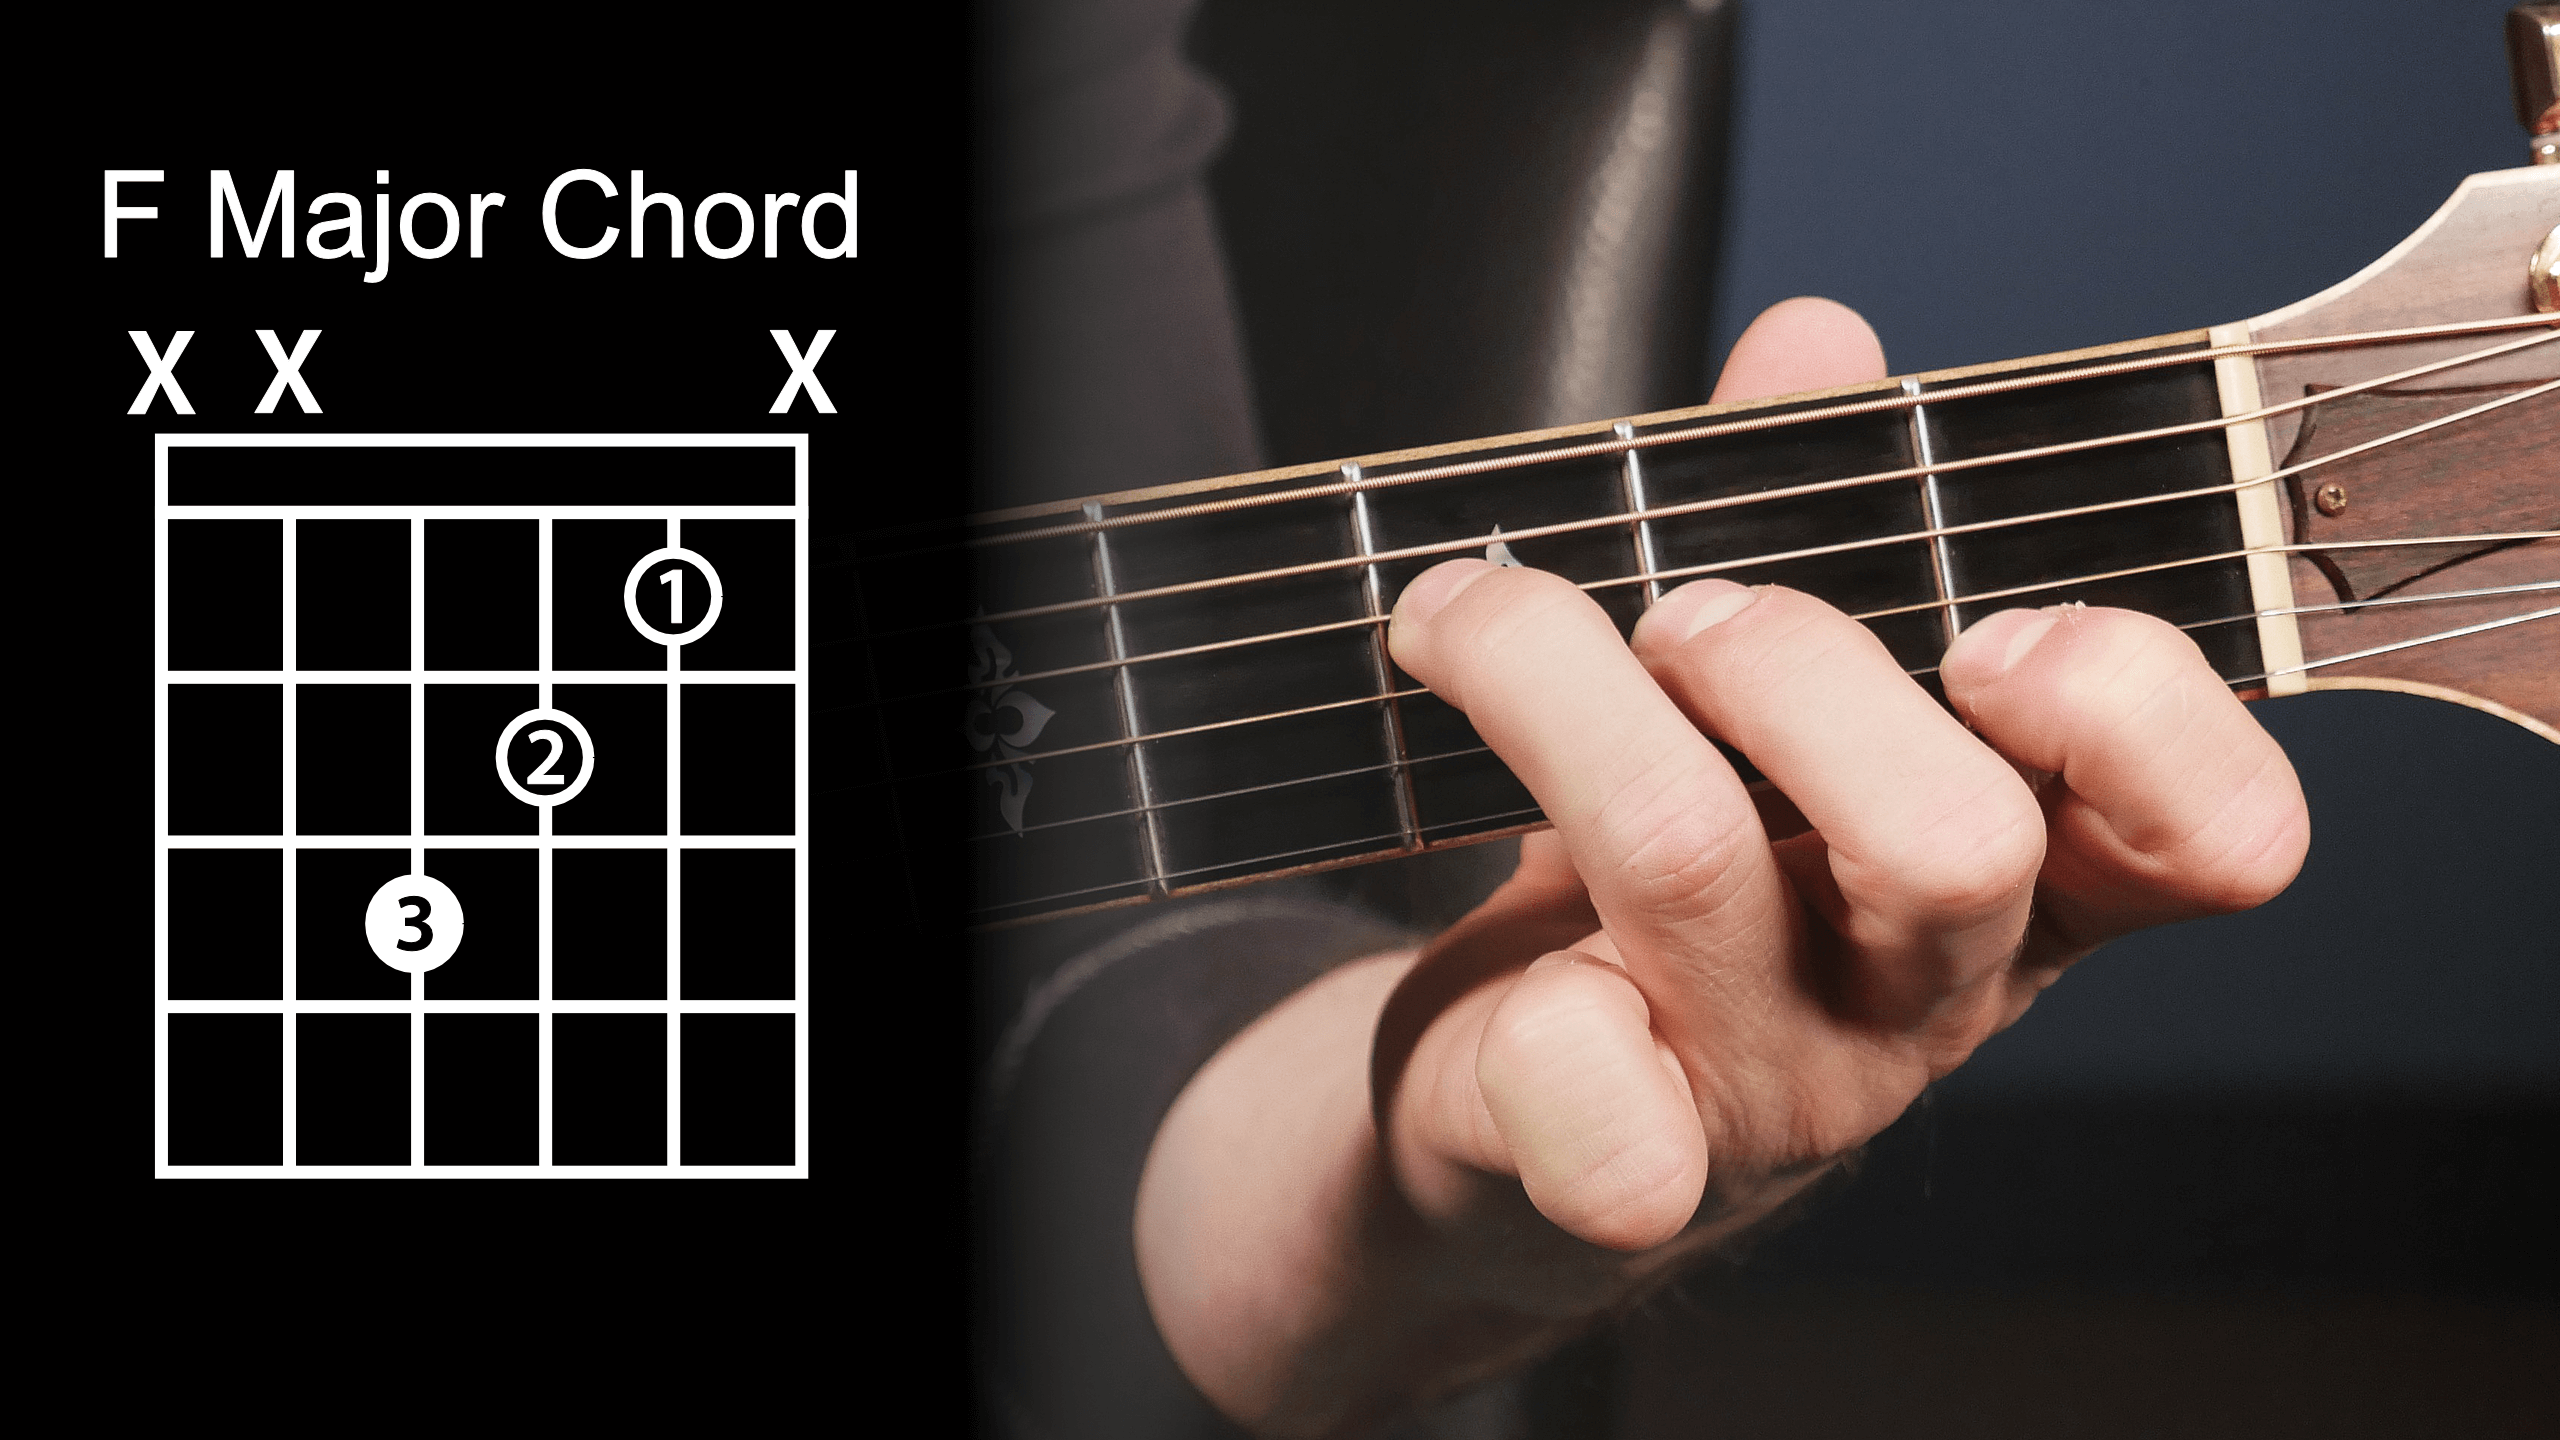 8 guitar chords you must know guitar lesson video f major chord diagram hexwebz Gallery